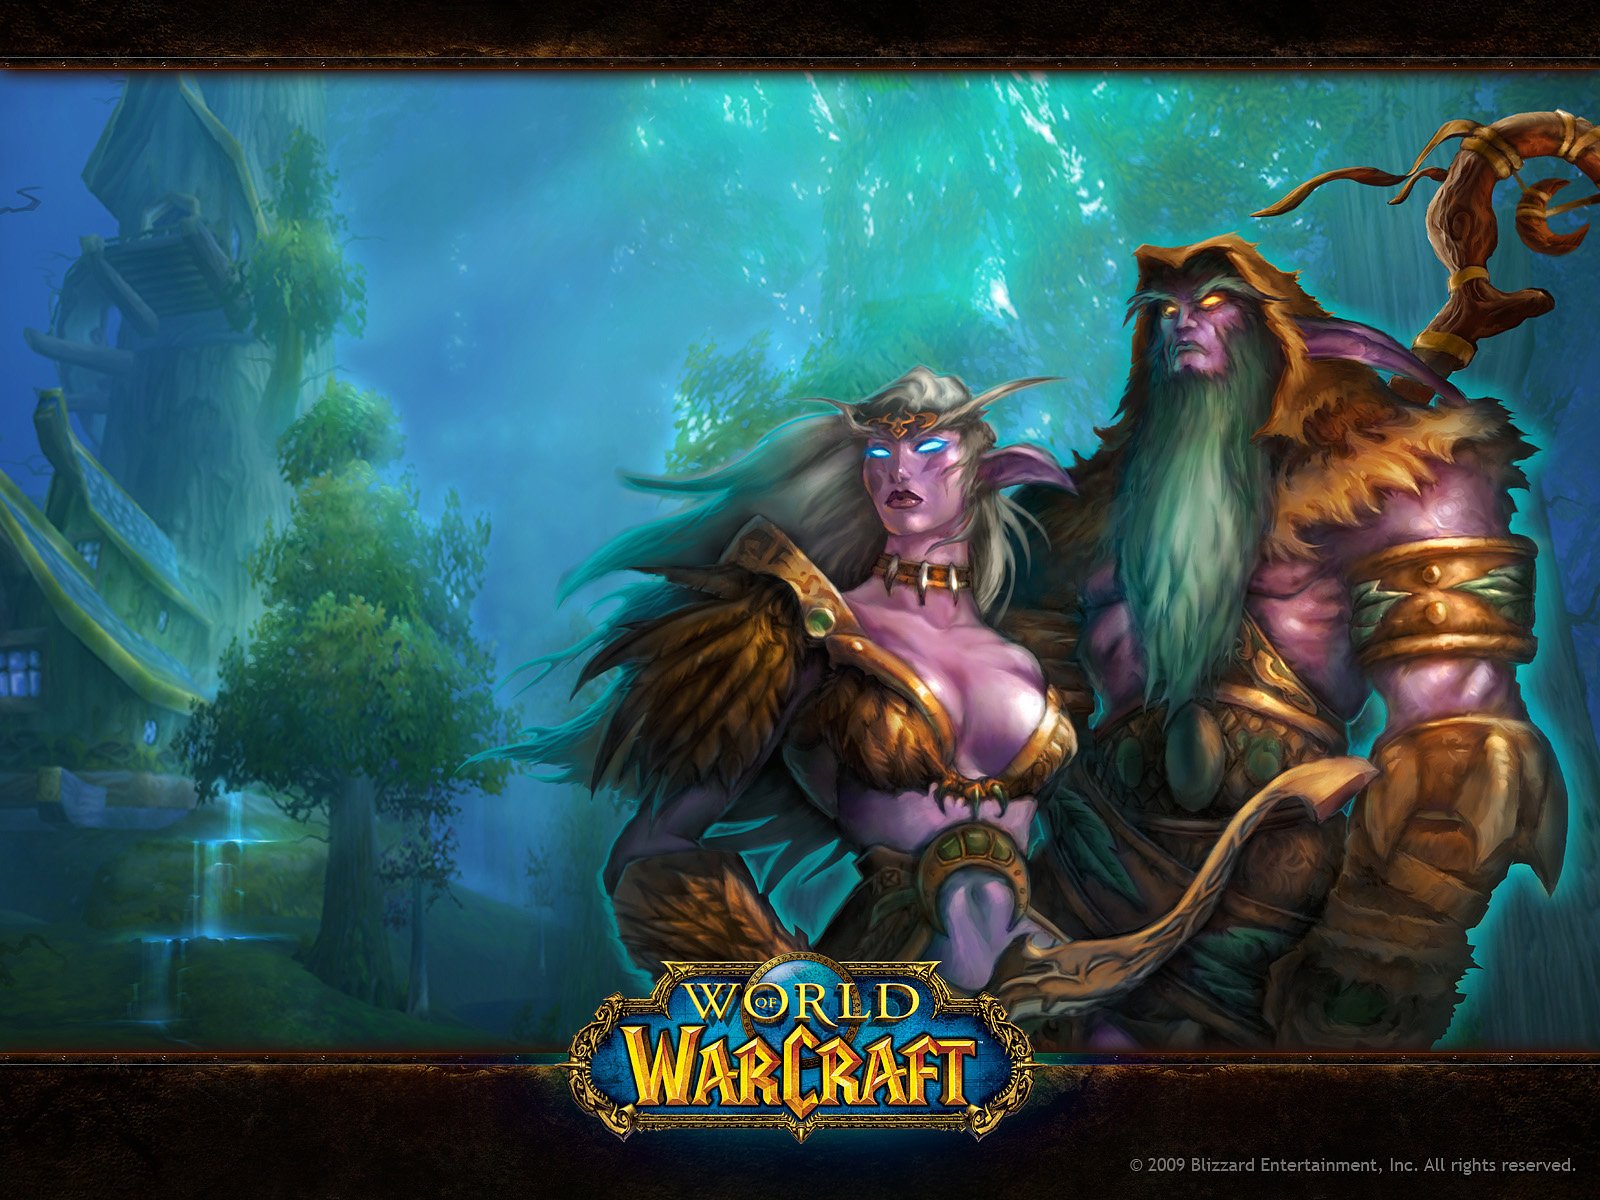 World Of Warcraft Featured Characters 1657.23 Kb